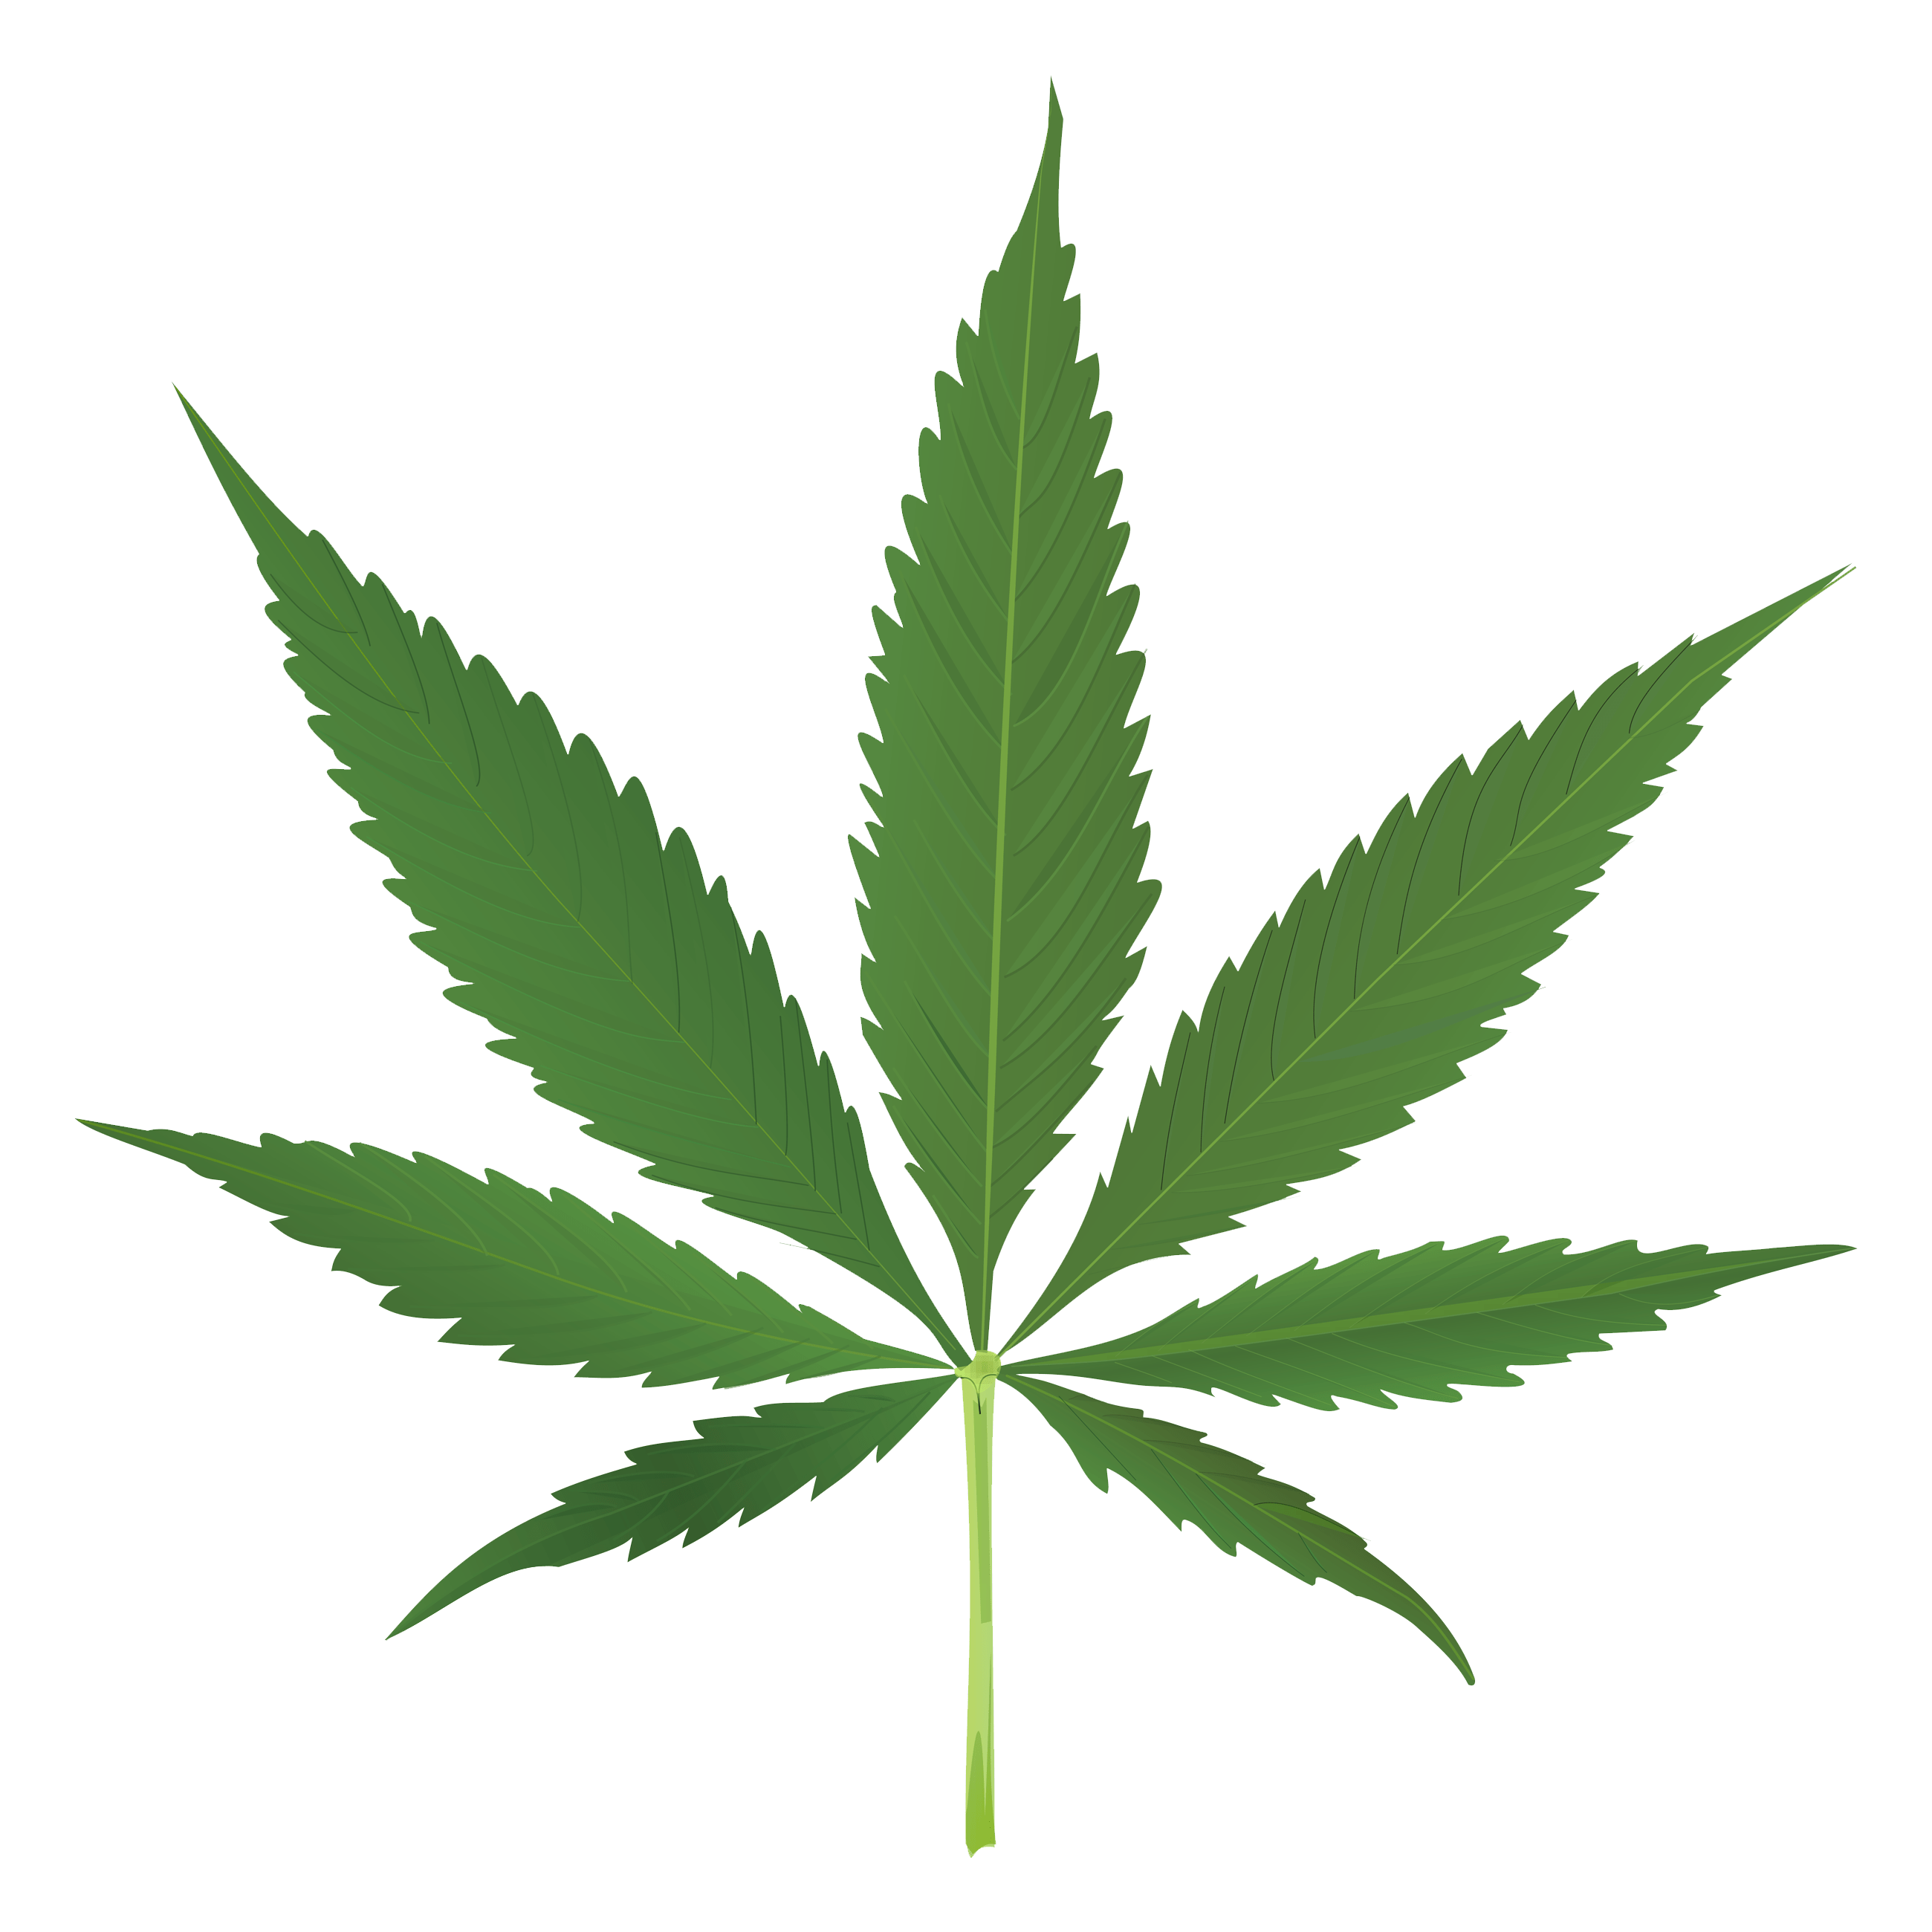 Cartoon weed leaf png. Thug life transparent stickpng